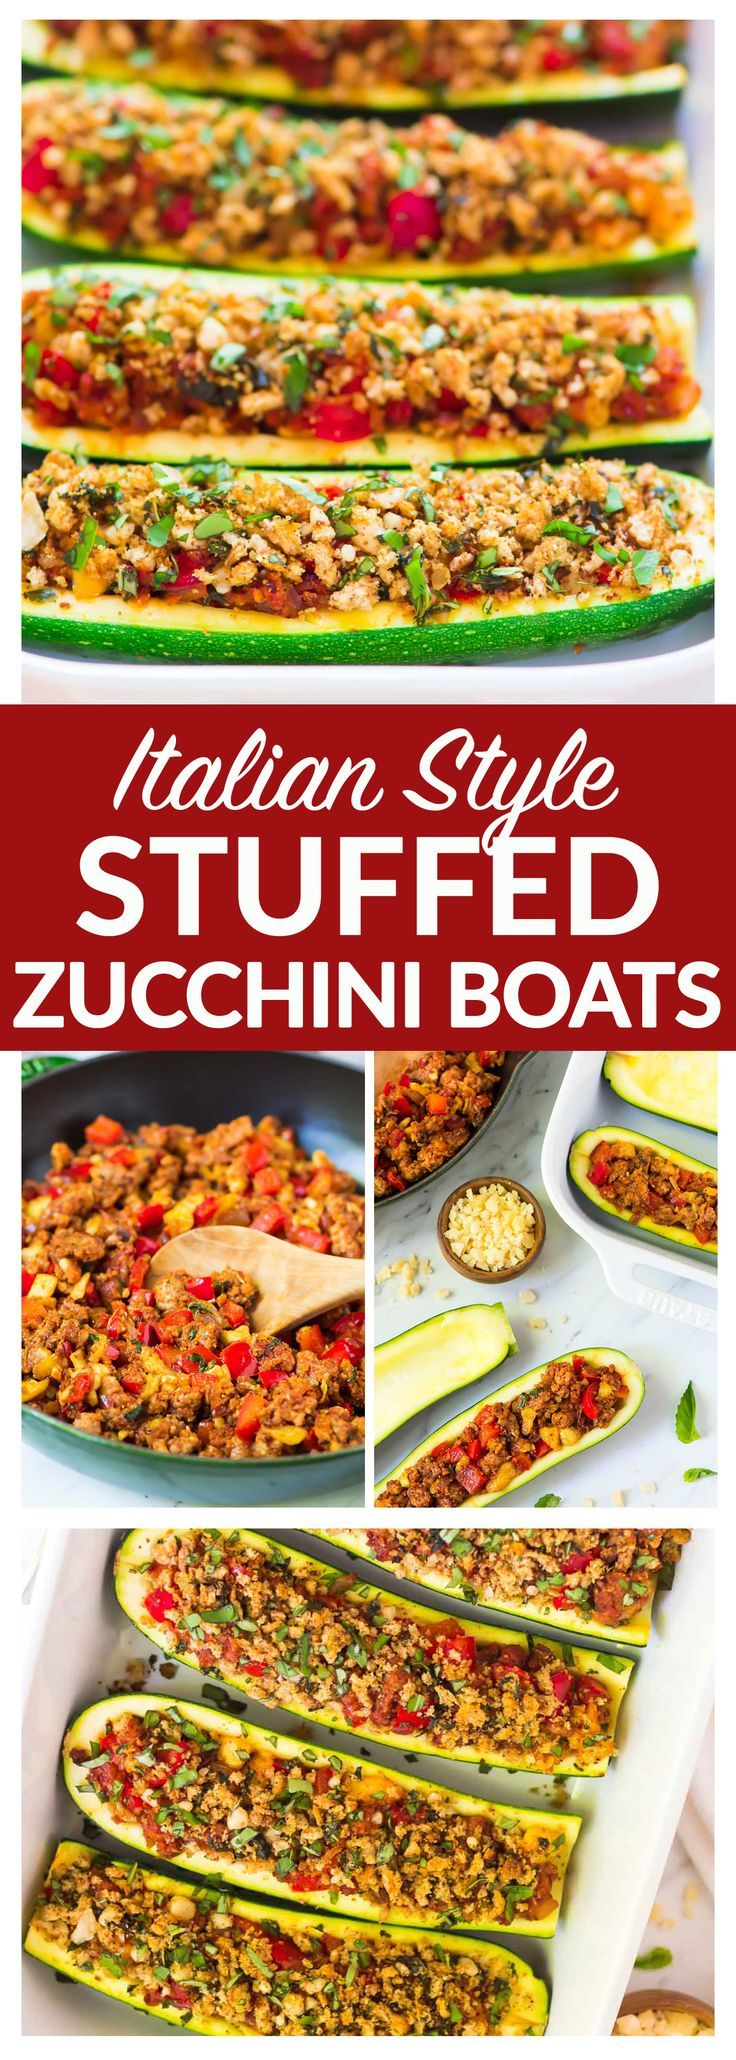 Healthy Italian Stuffed Zucchini Boats – low carb baked zucchini boats stuffed with lean ground turkey sausage, tomatoes, and topped with crispy basil breadcrumbs. An easy, healthy, all-in-one dinner that your whole family will love! Recipe at wellplated.com | @wellplated